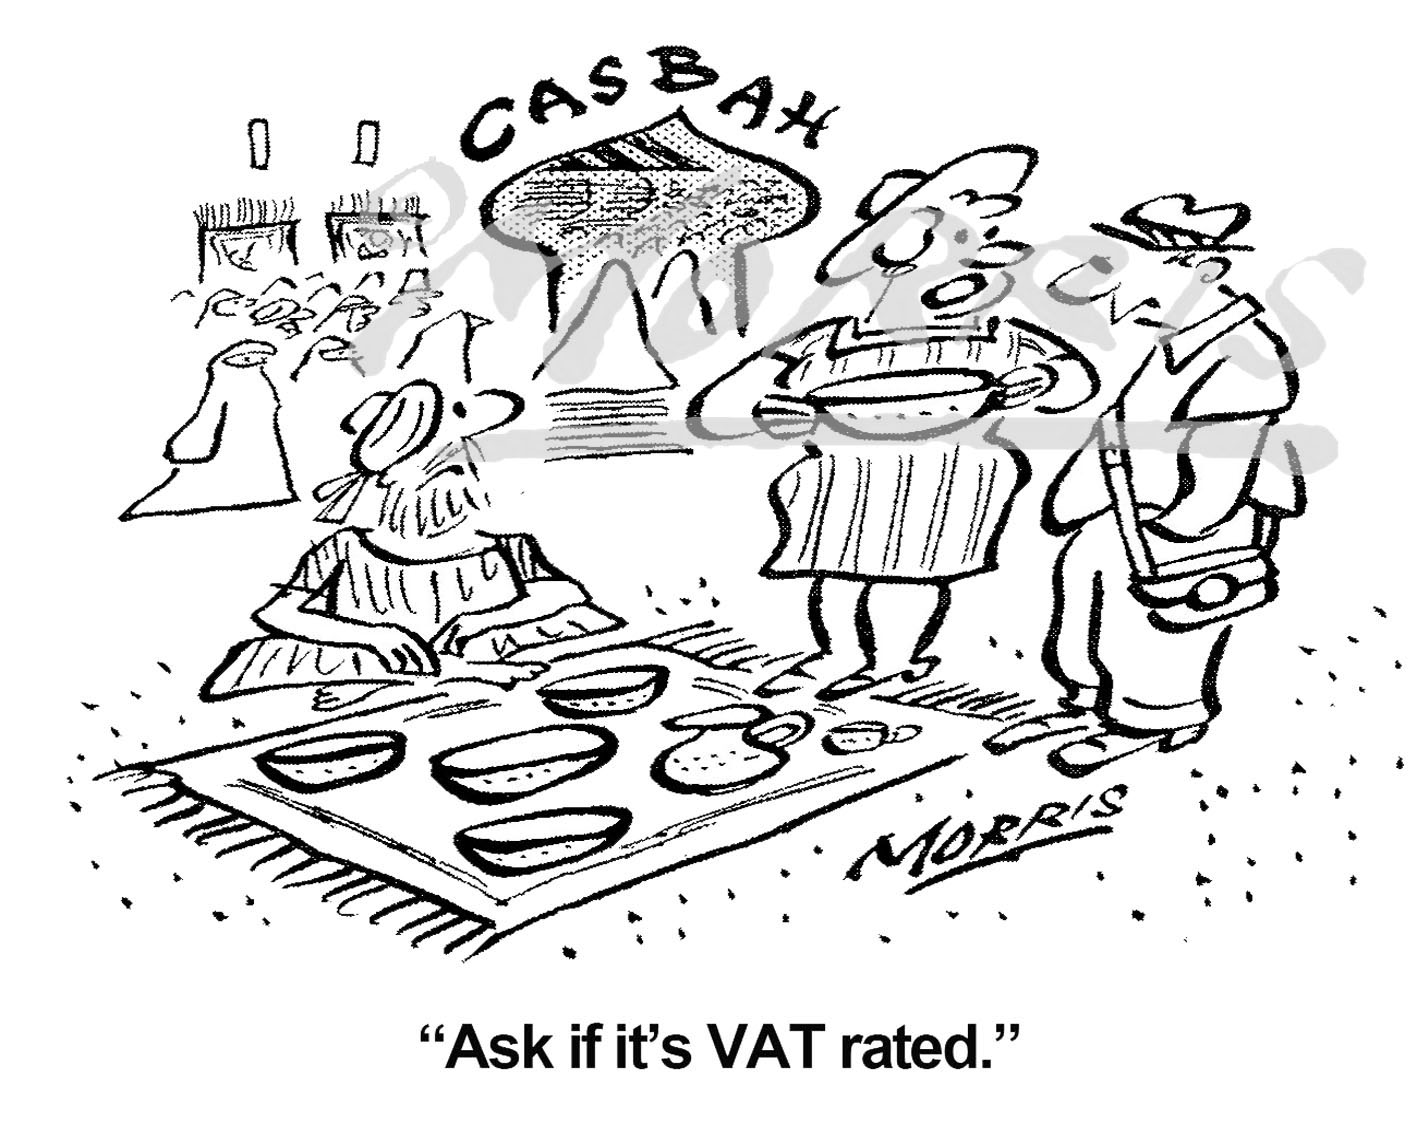 Taxation cartoon, VAT cartoon – Ref: 7372bw